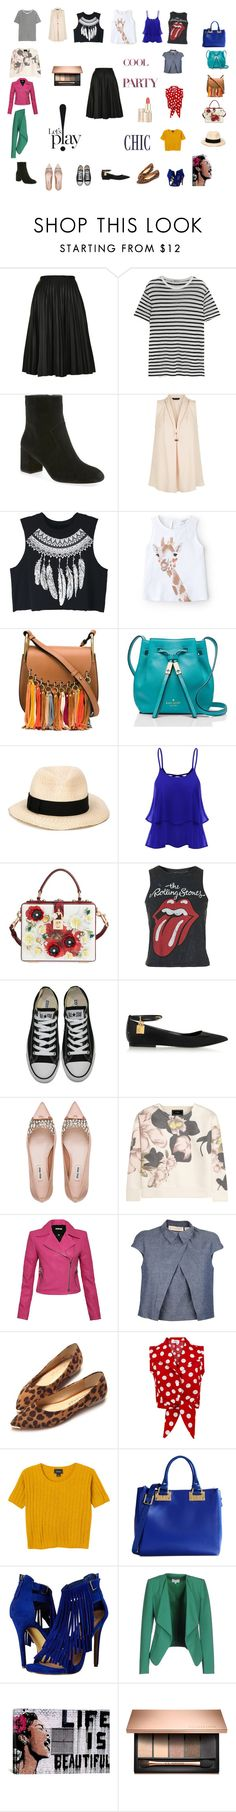 """""""Untitled #113"""" by mariela-hayoon on Polyvore featuring Topshop, T By Alexander Wang, Rebecca Minkoff, New Look, WithChic, MANGO, Chloé, Kate Spade, Eugenia Kim and Dolce&Gabbana"""